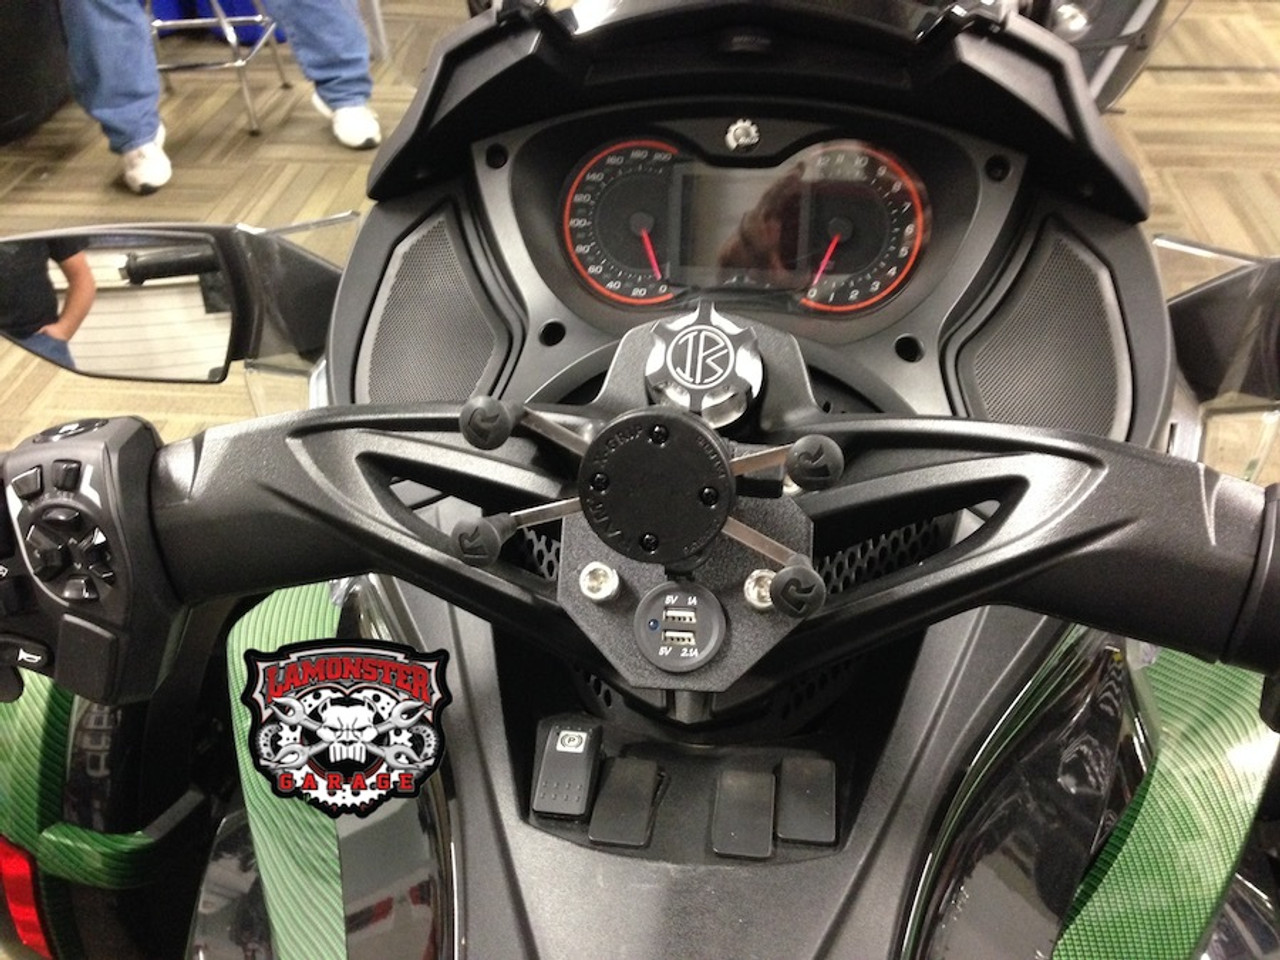 Can-Am Spyder, SpyderDock with X-Grip Combo (with 12v CIG/USB ) (LG-1084-UN7B) by Lamonster Shown on ST